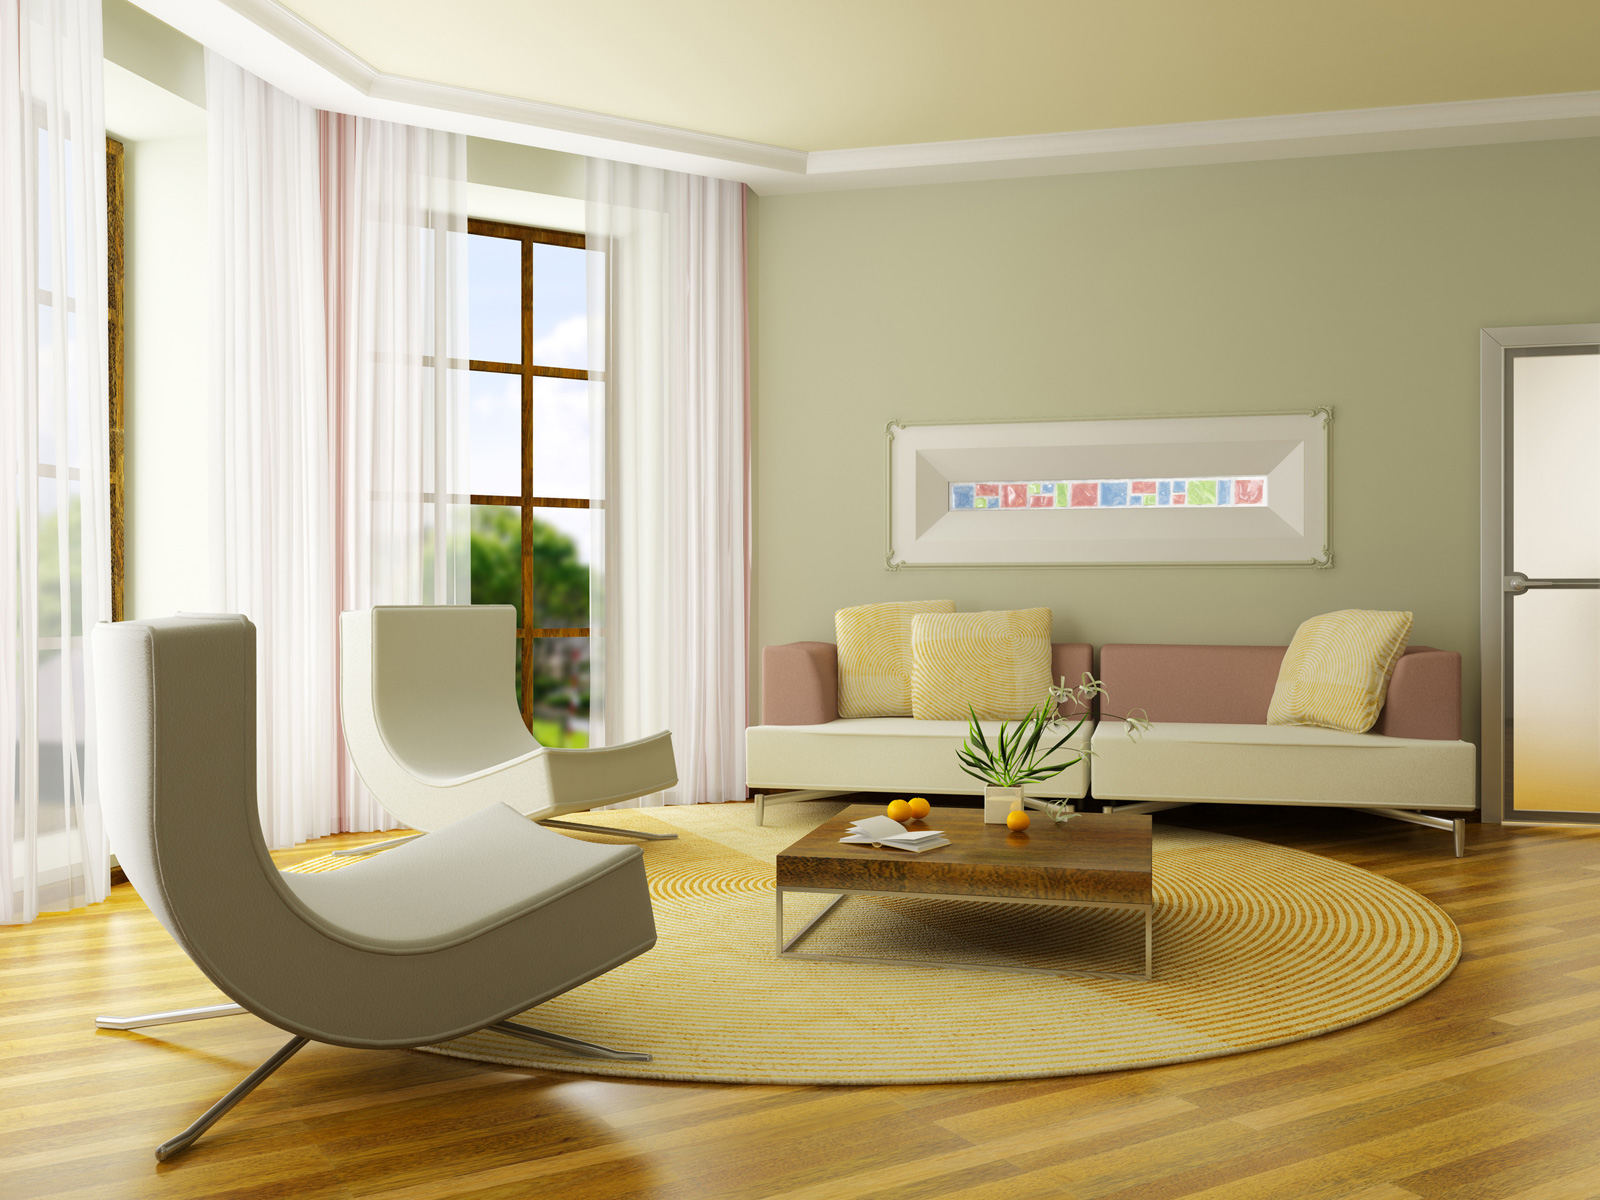 amusing-living-room-paint-colors-modern-8-design-natural-nice-design-of-the-interior-that-has-white-wall-can-be-decor-with-wooden-floor-add-beauty-inside-ceramics-great-ideas-for-adding-color-to-bljpg